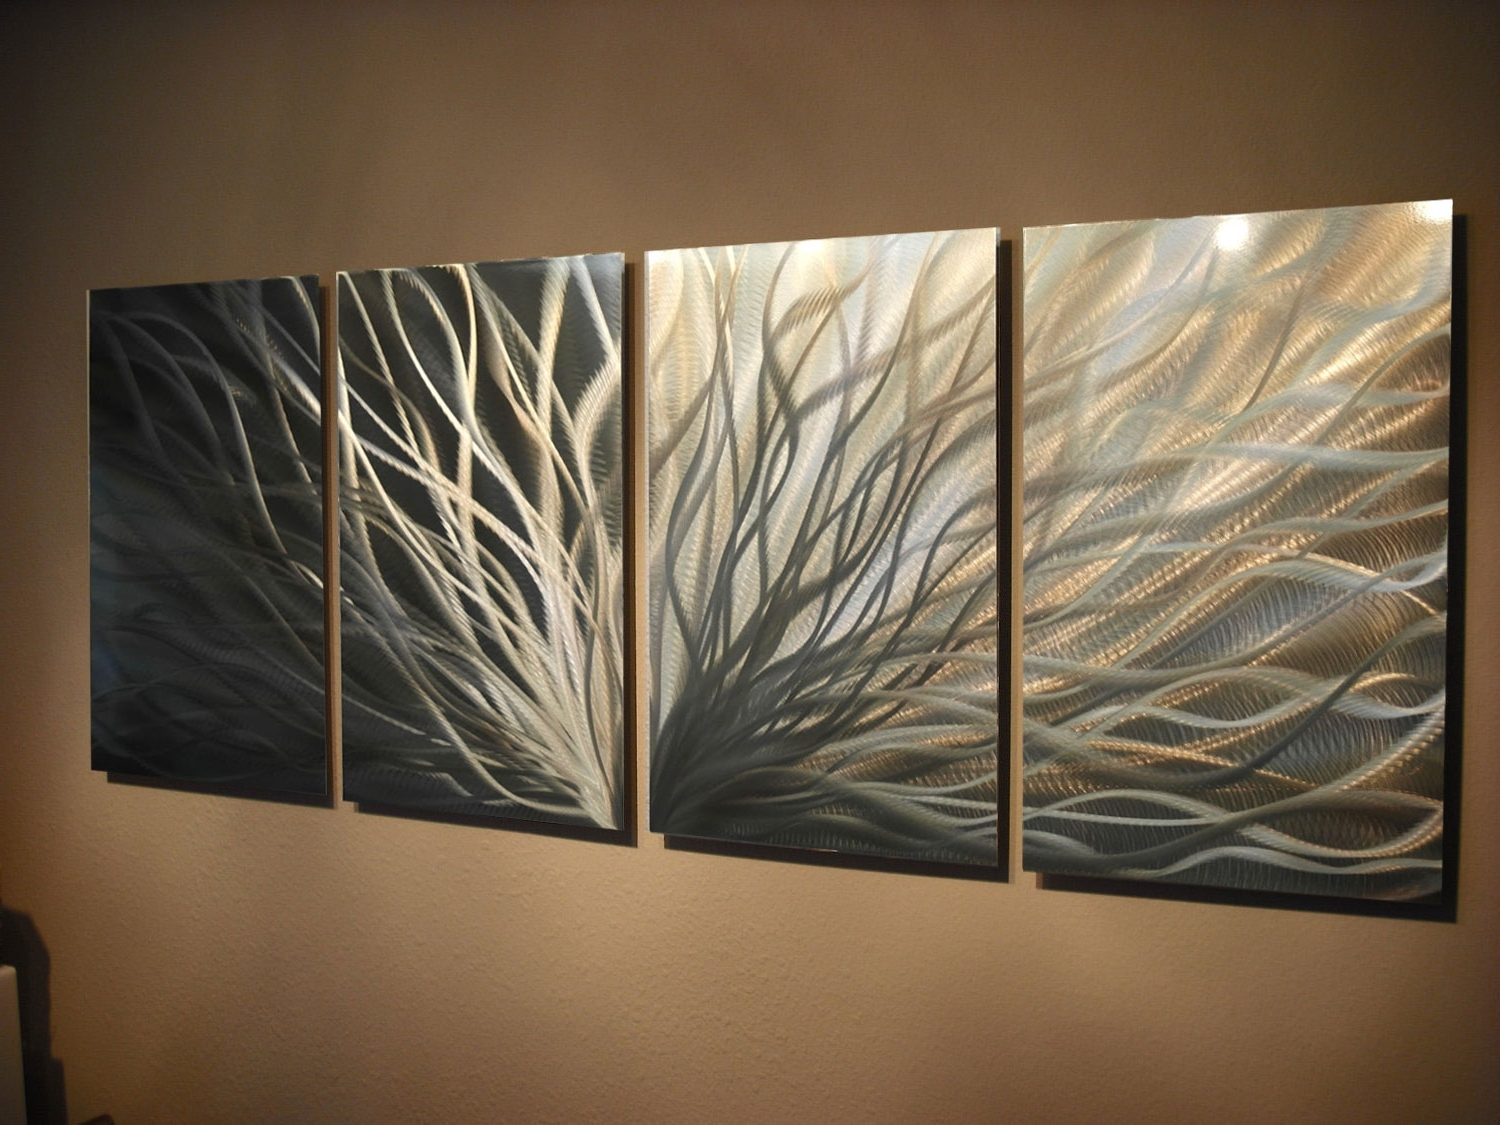 Abstract Metal Wall Art Radiance Gold Silver Contemporary Modern Regarding Widely Used Gold Metal Wall Art (View 14 of 15)